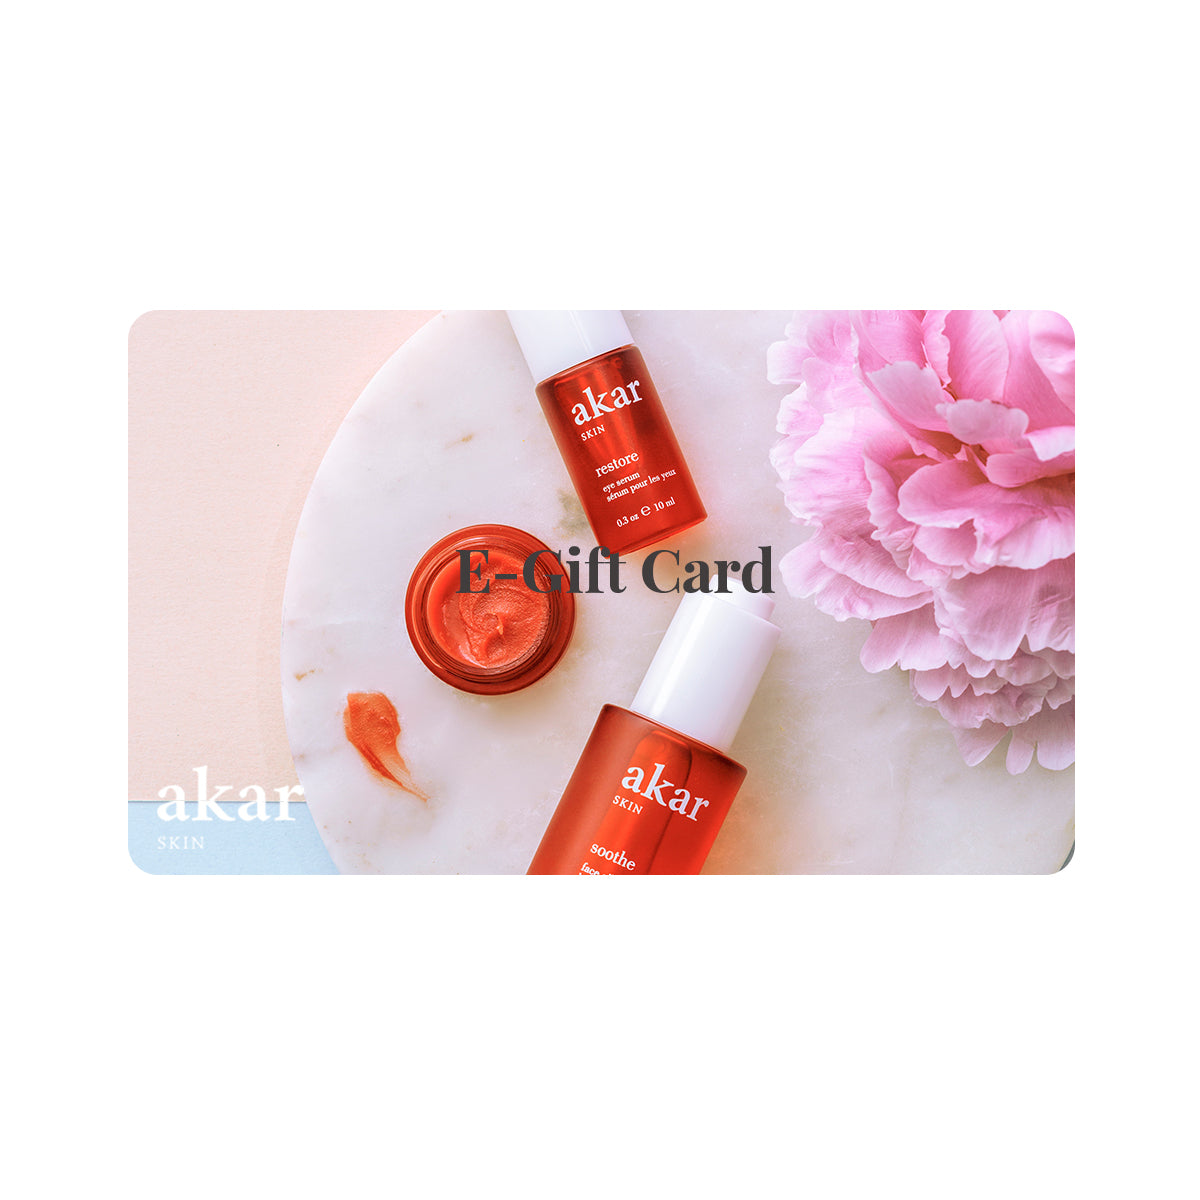 akar skin, luxury, Tibetan inspired skincare, clean beauty, digital gift card coupon